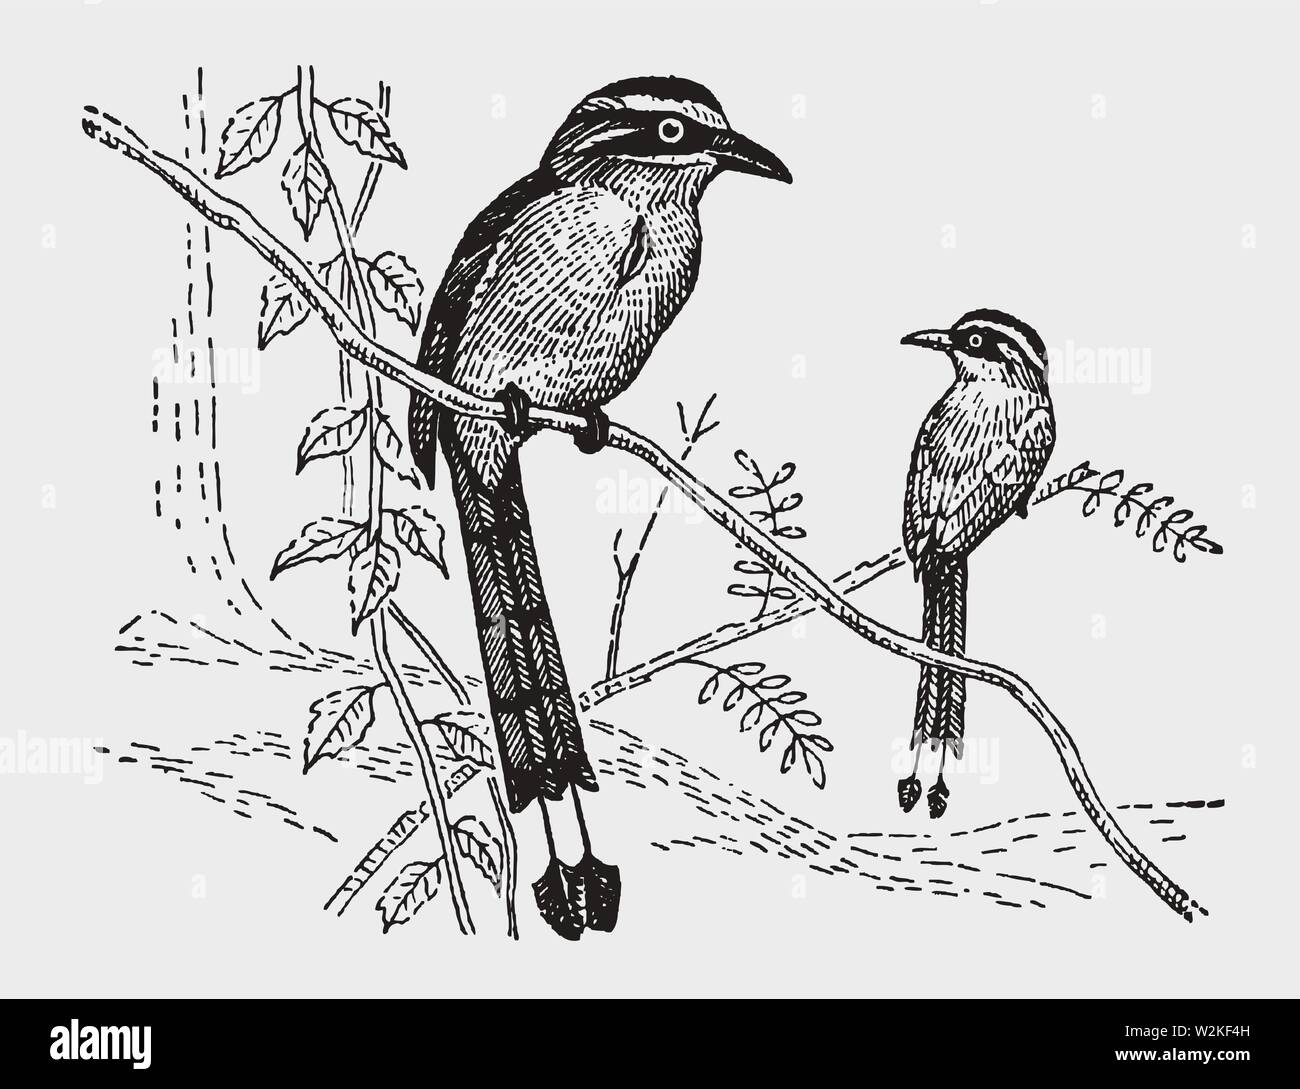 Two Motmot Momotus Birds Sitting On A Branch Illustration After A Historic Engraving From The Early 20th Century Stock Vector Image Art Alamy